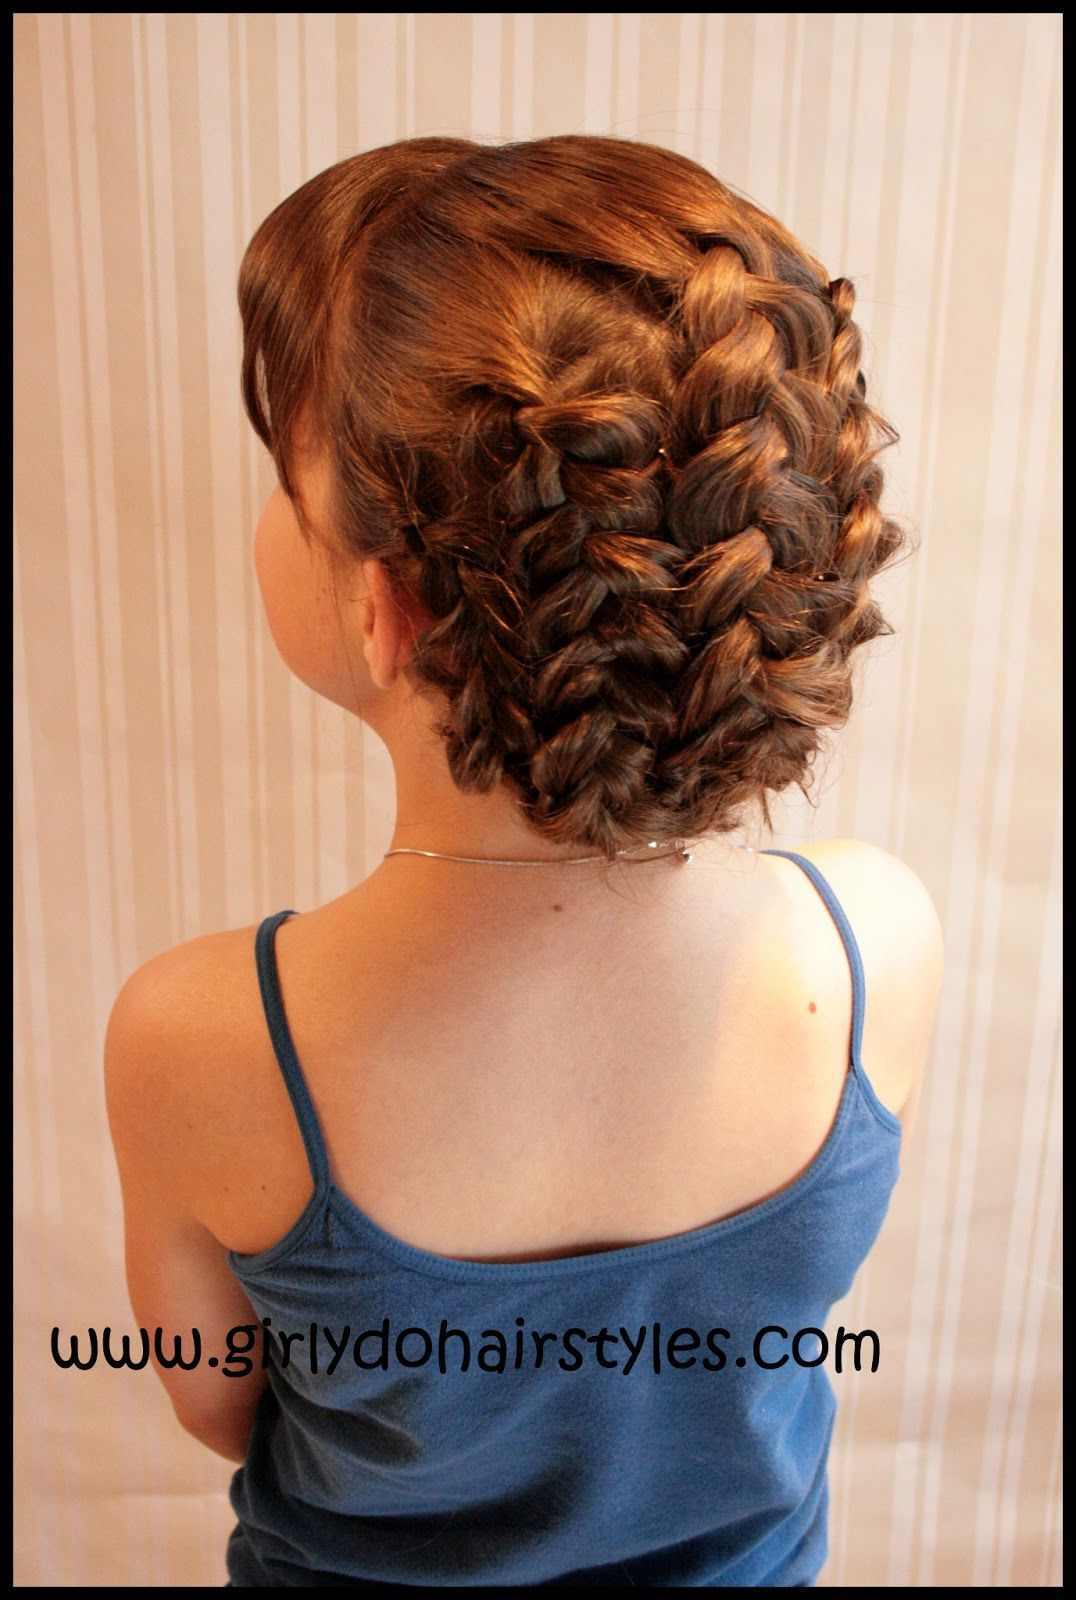 Braided up hairstyle so easy to recreate tutorial prom